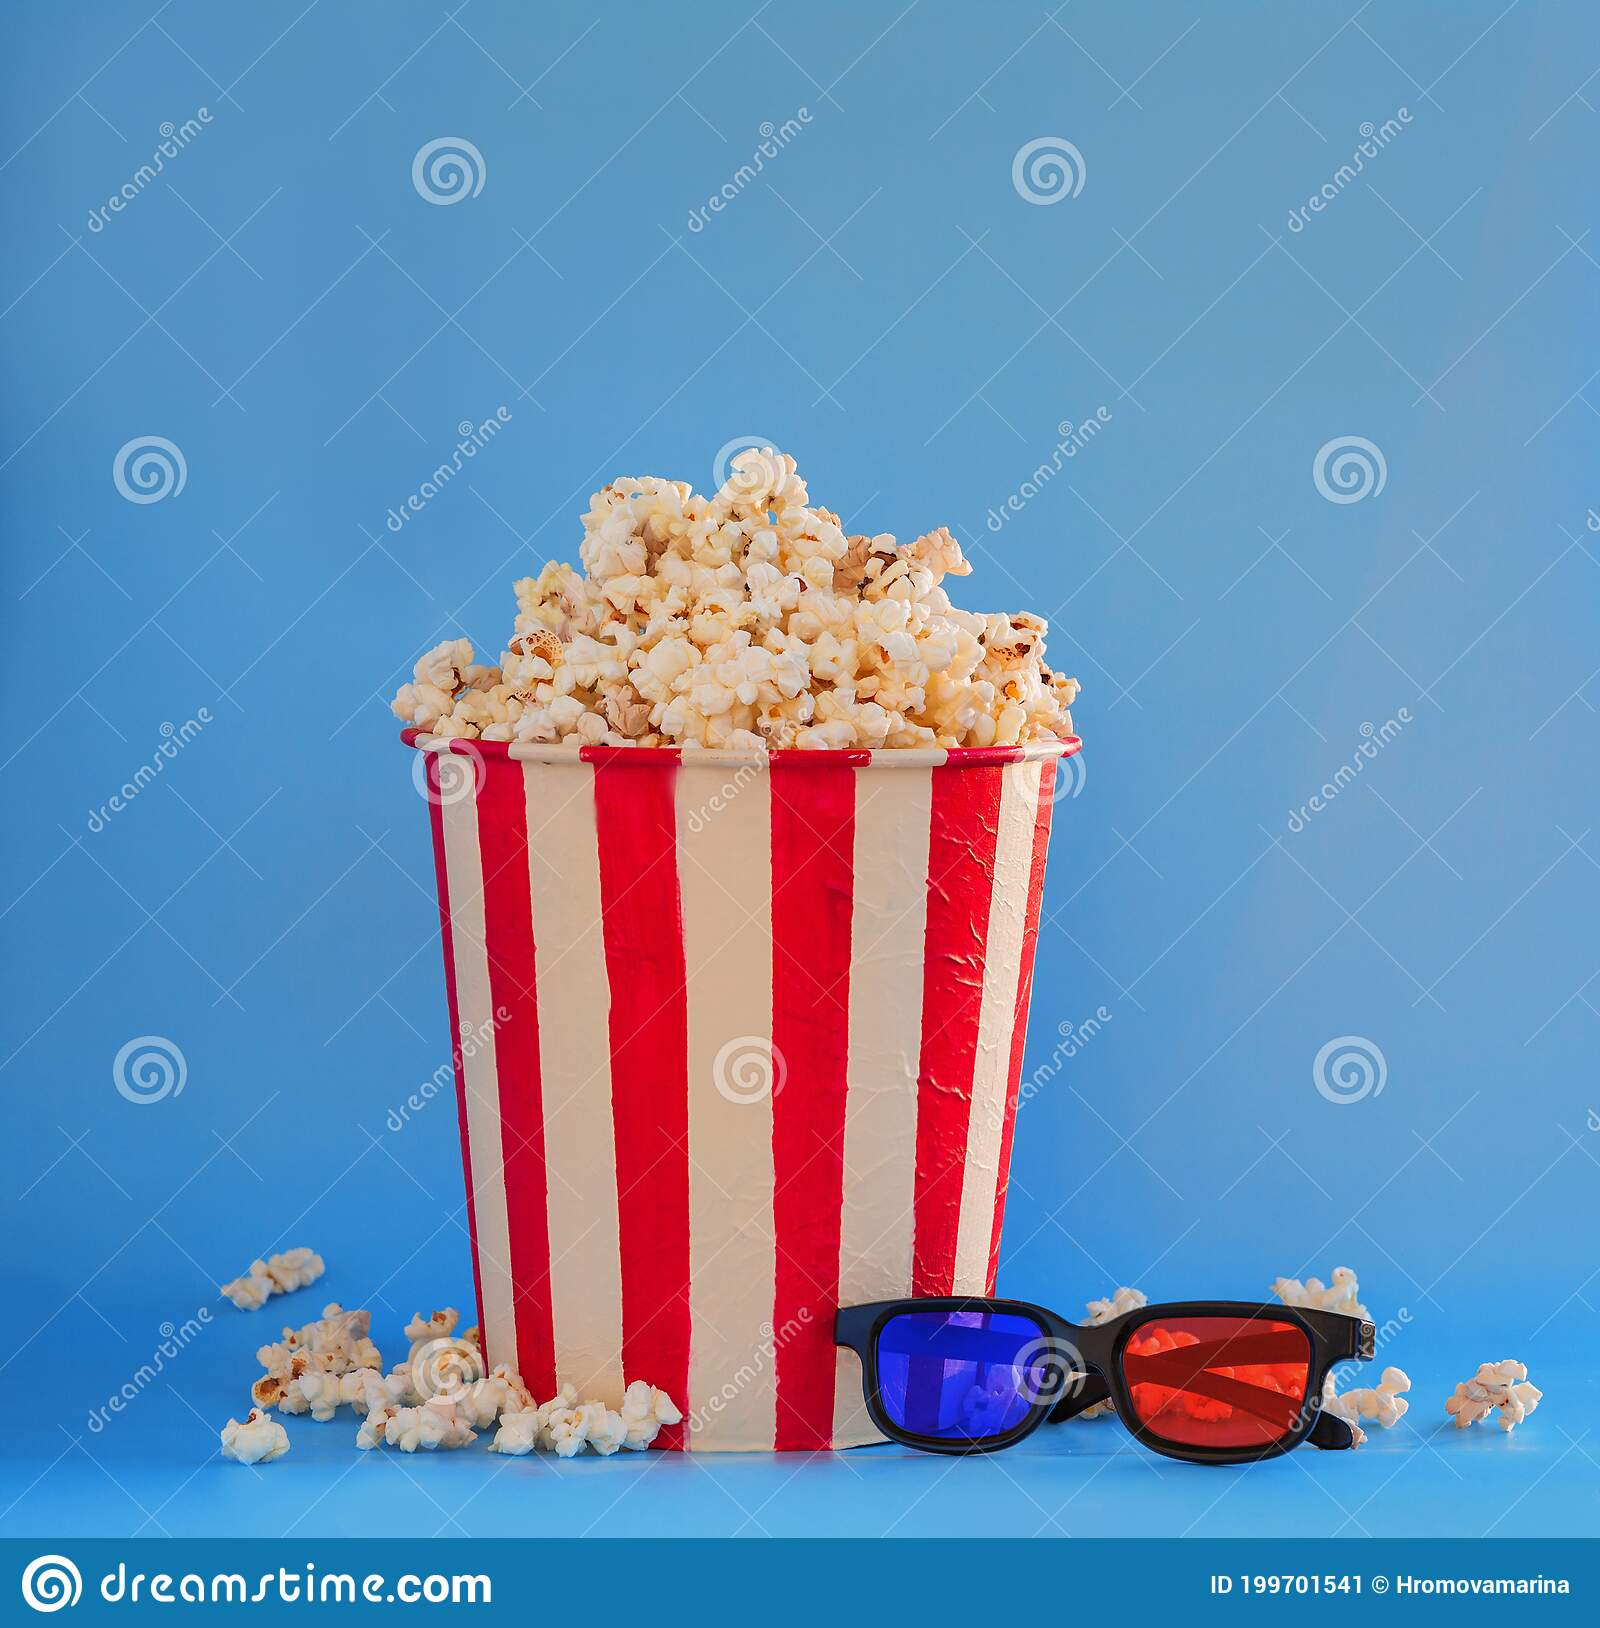 A Bucket Full Of Popcorn On A Blue Background And 3d Glasses Stock Image Image Of Refreshment Fastfood 199701541